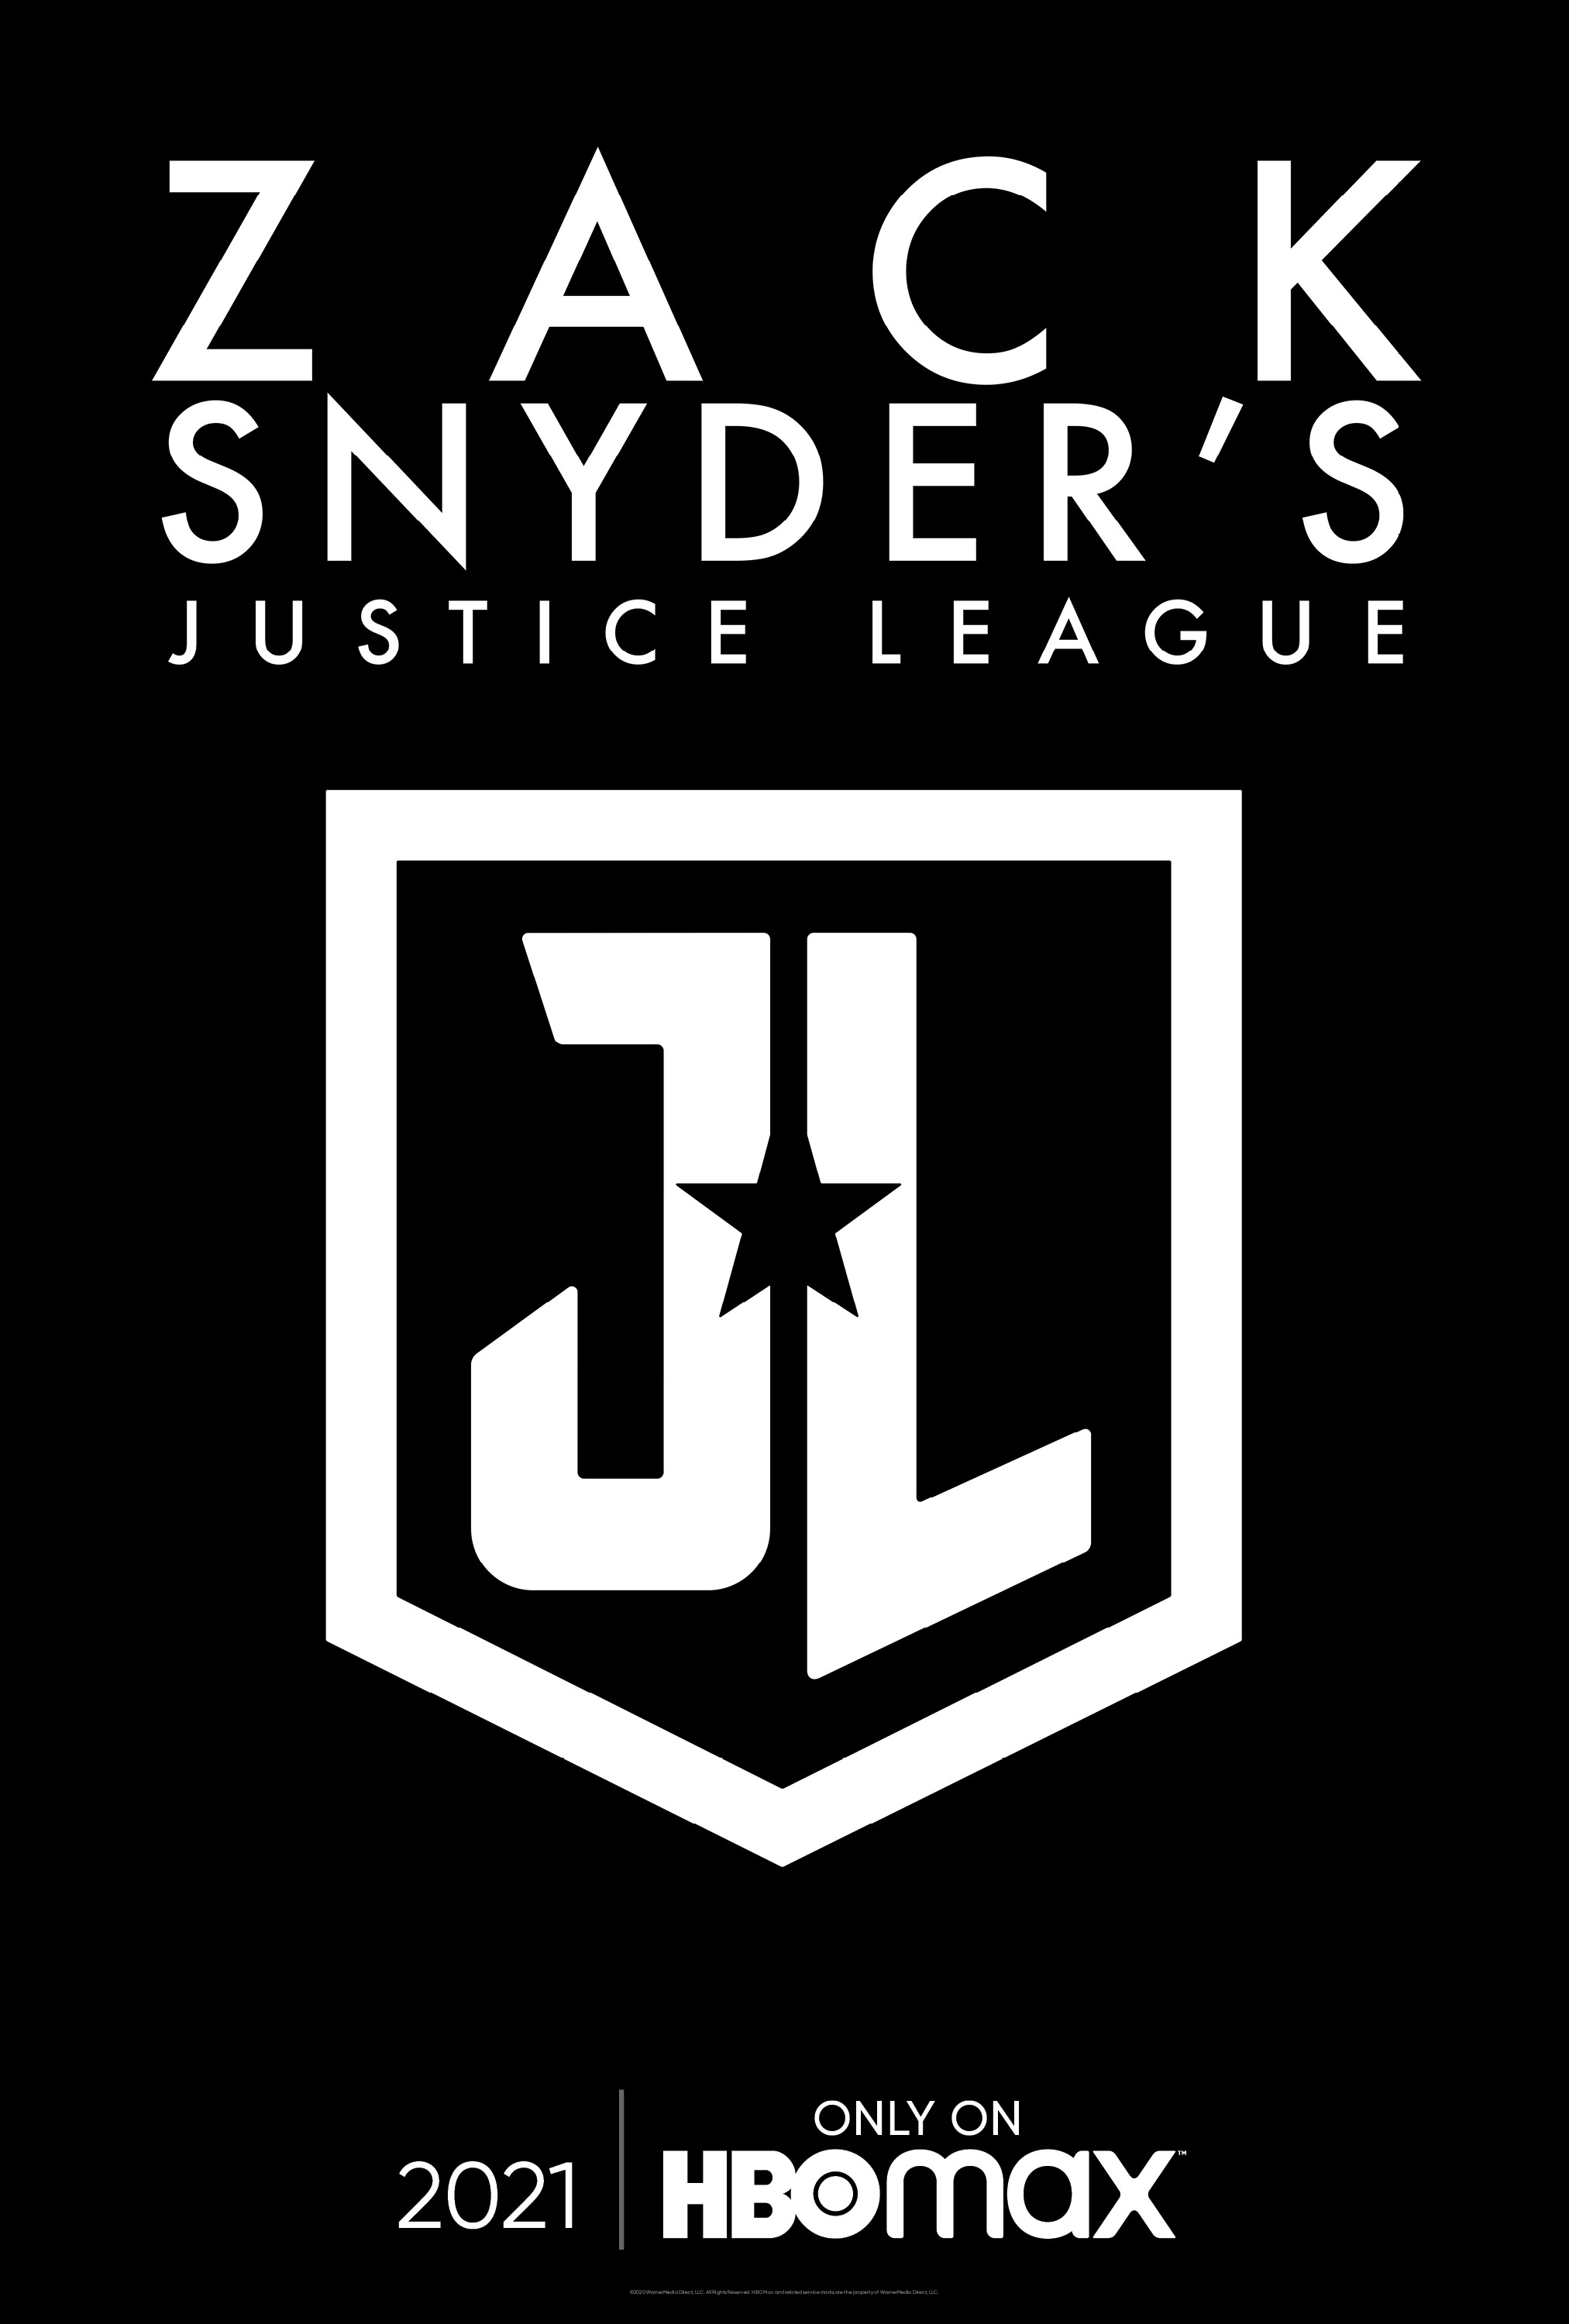 szmk_hbo_justice_league_snydercut_zack_snyder_batman_dc_comics_superman_aquaman_wonder_woman_cyborg_darkseid_1.jpg